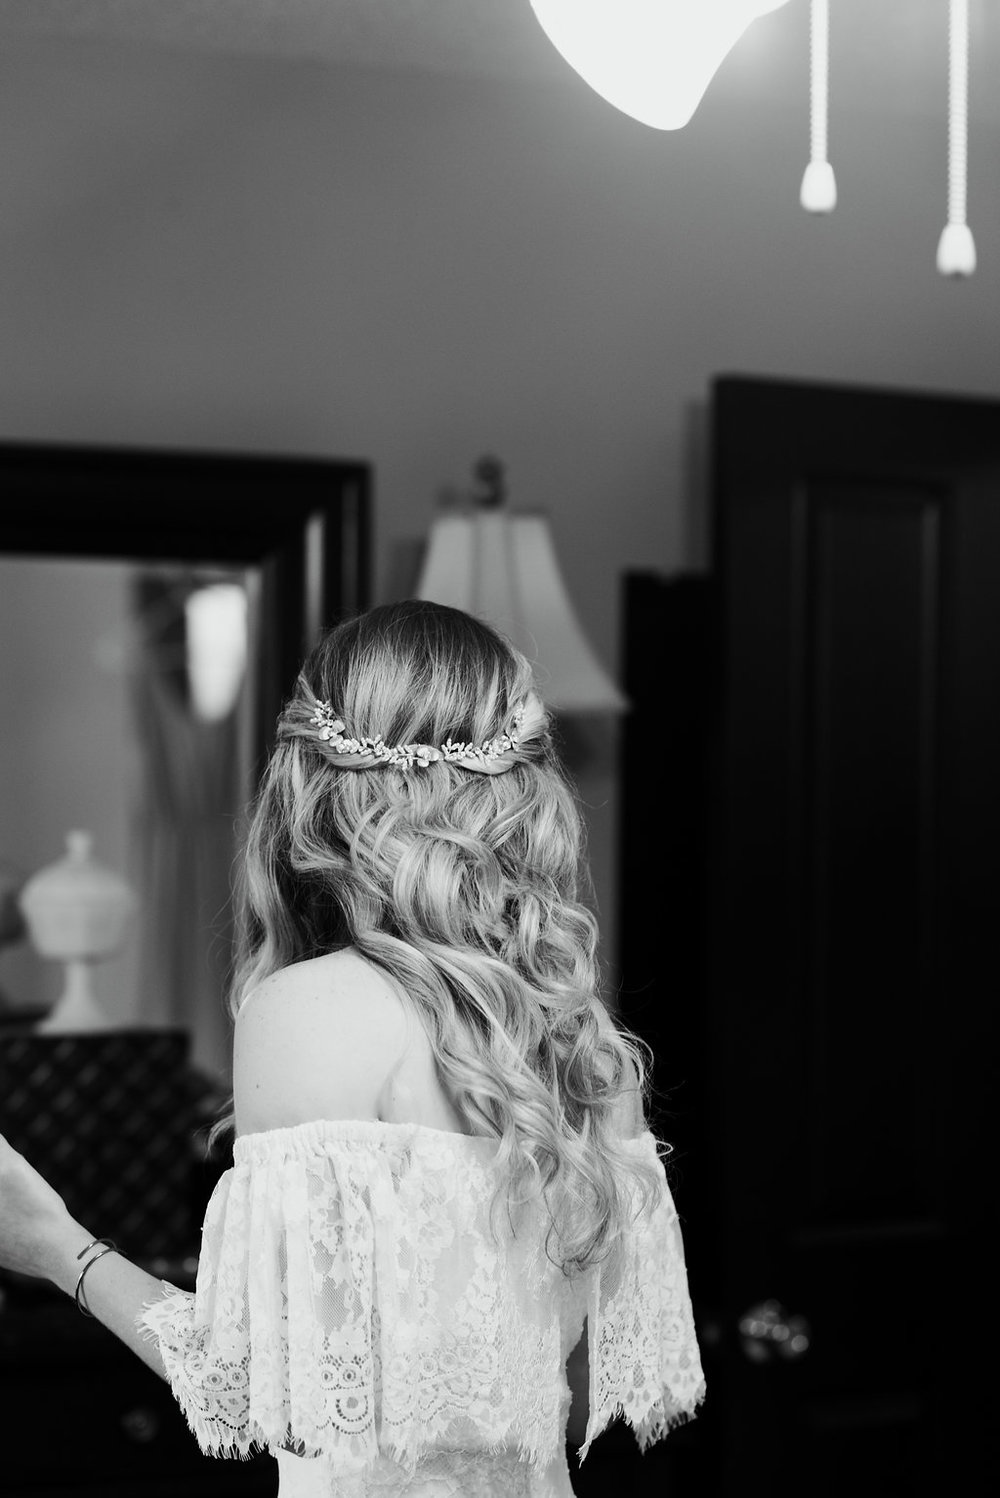 ivory-and-beau-bridal-boutique-meg-hill-photography-laurence-daughters-of-simone-boho-wedding-gown-douglas-ga-wedding-7.jpg